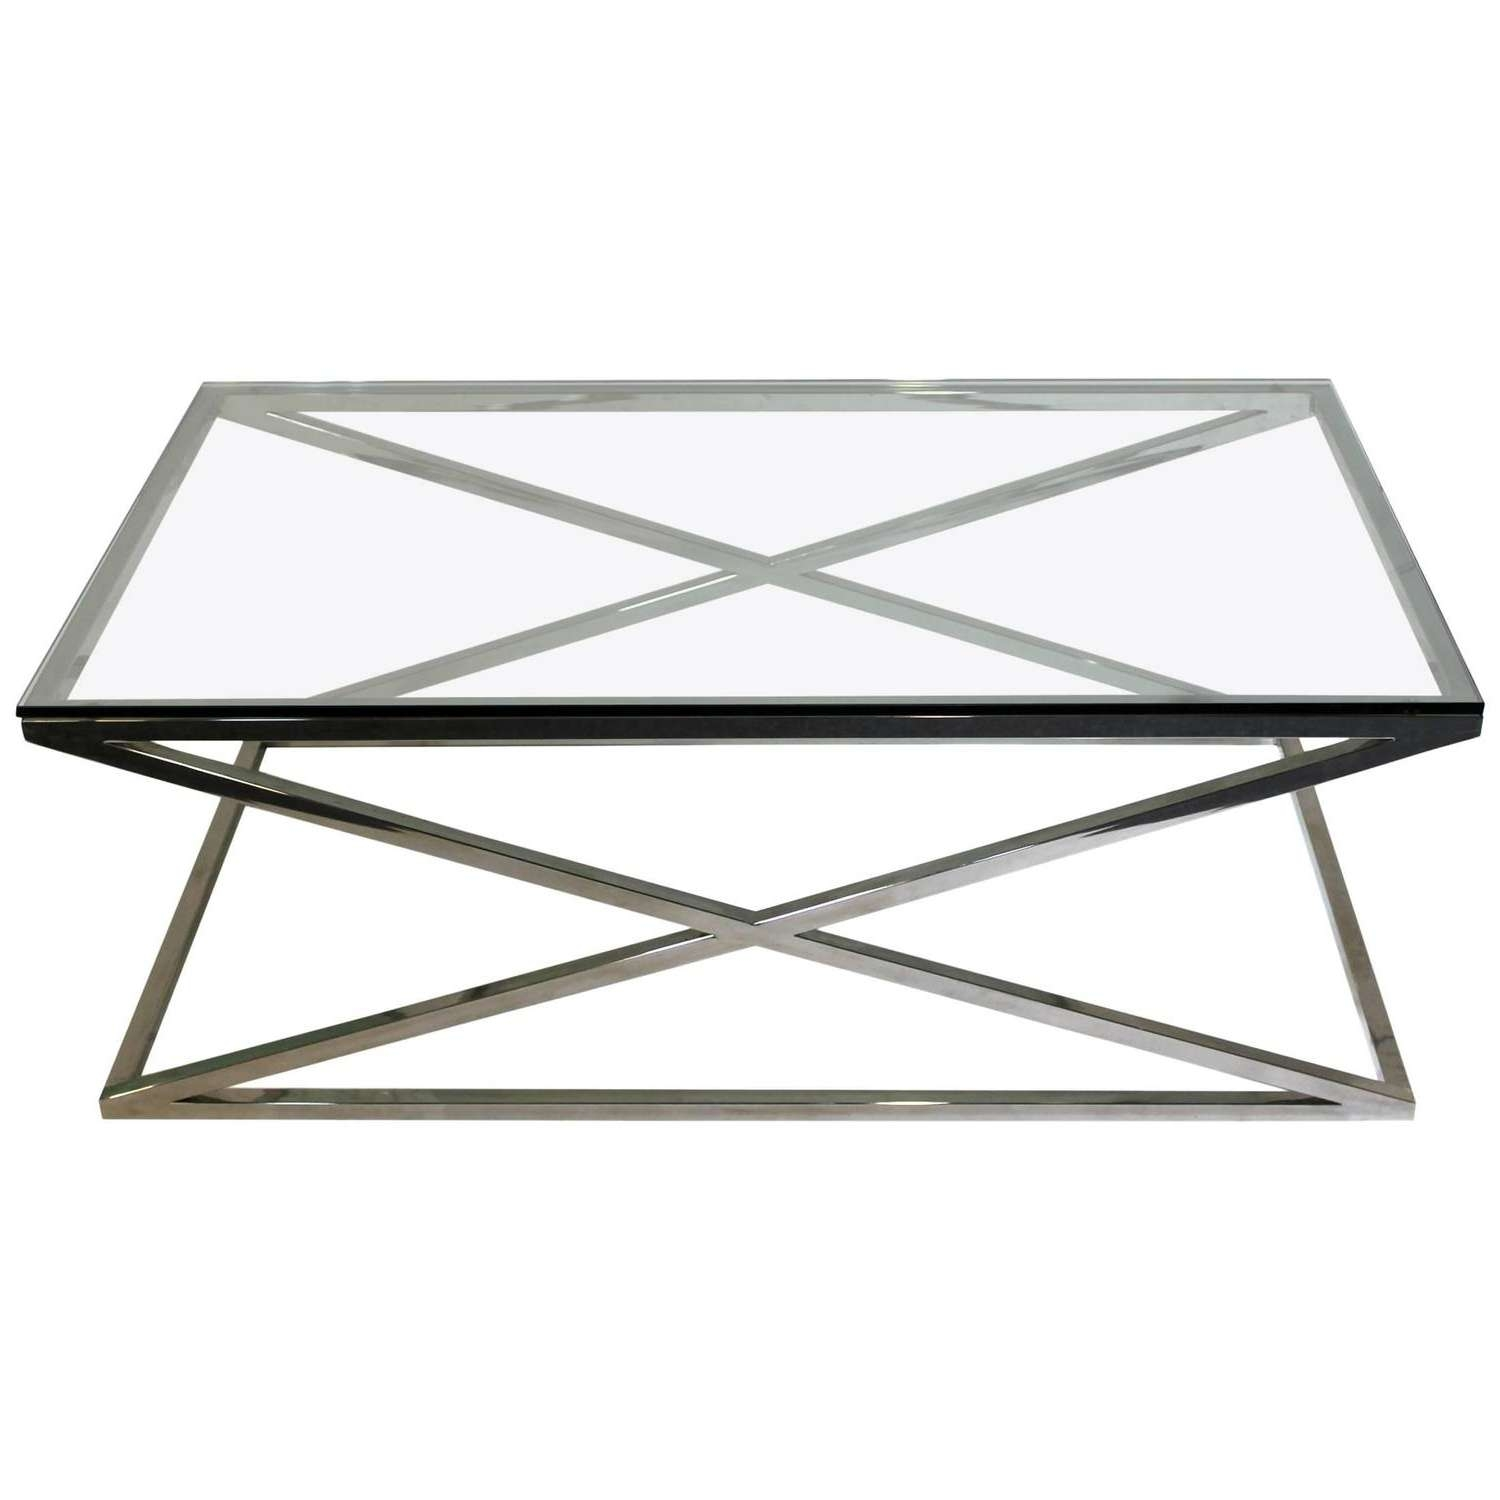 2017 Chrome Glass Coffee Tables In Mid Century Modern Rectangular Glass Coffee Table Chrome X Base At (View 11 of 20)